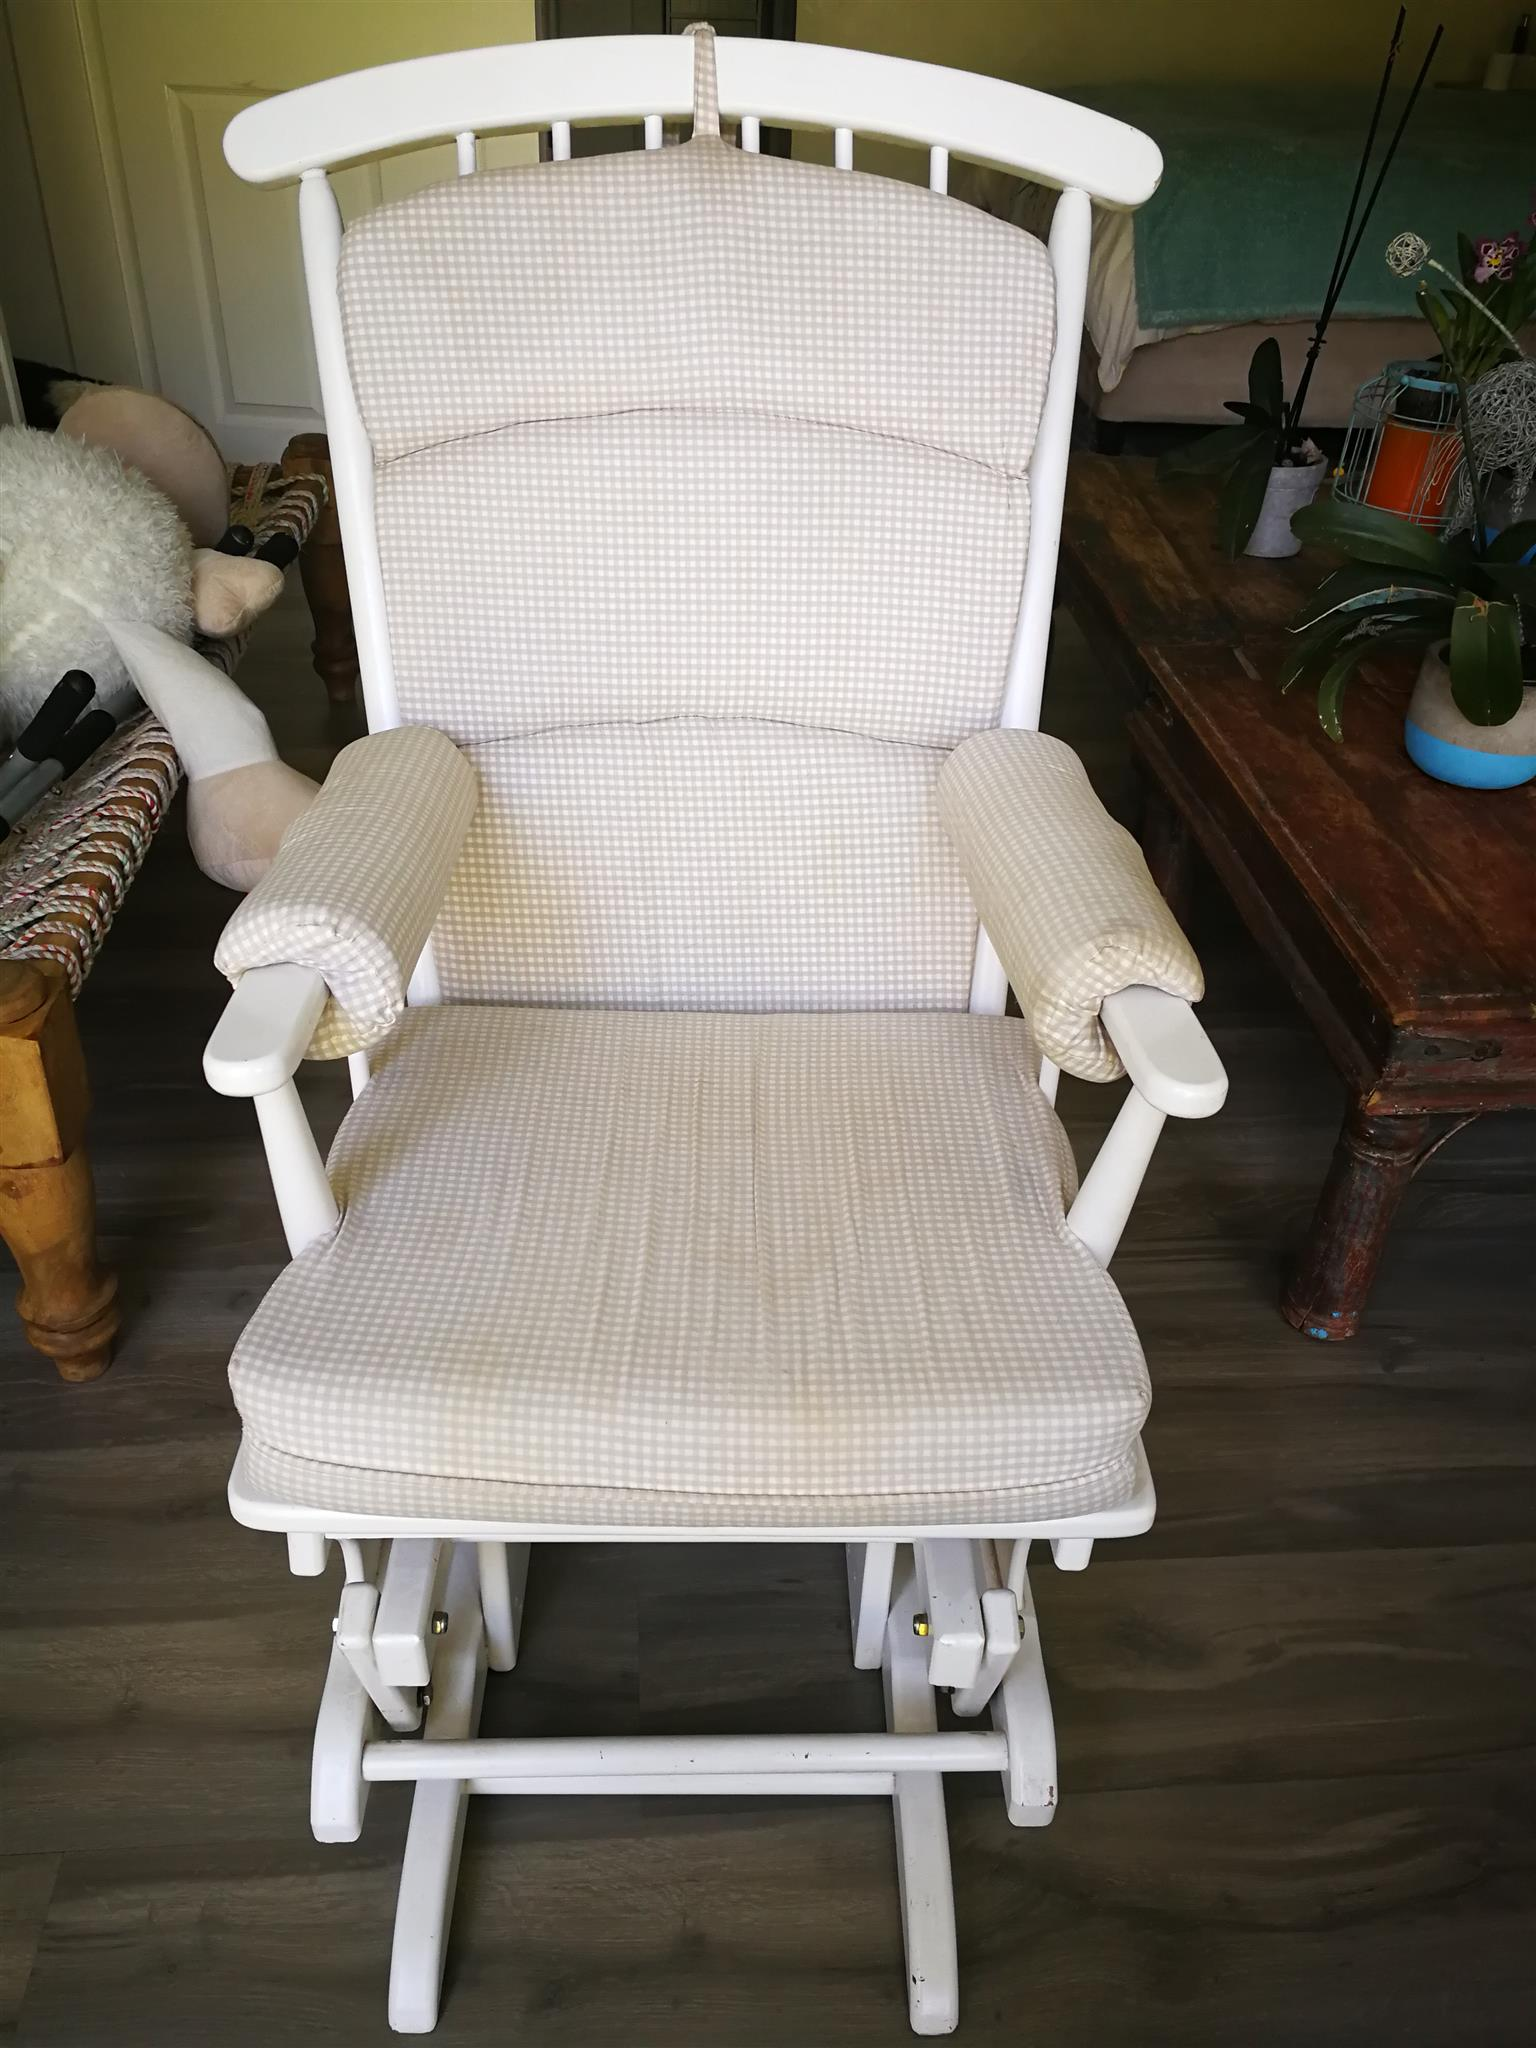 & Rocking chair for sale | Junk Mail